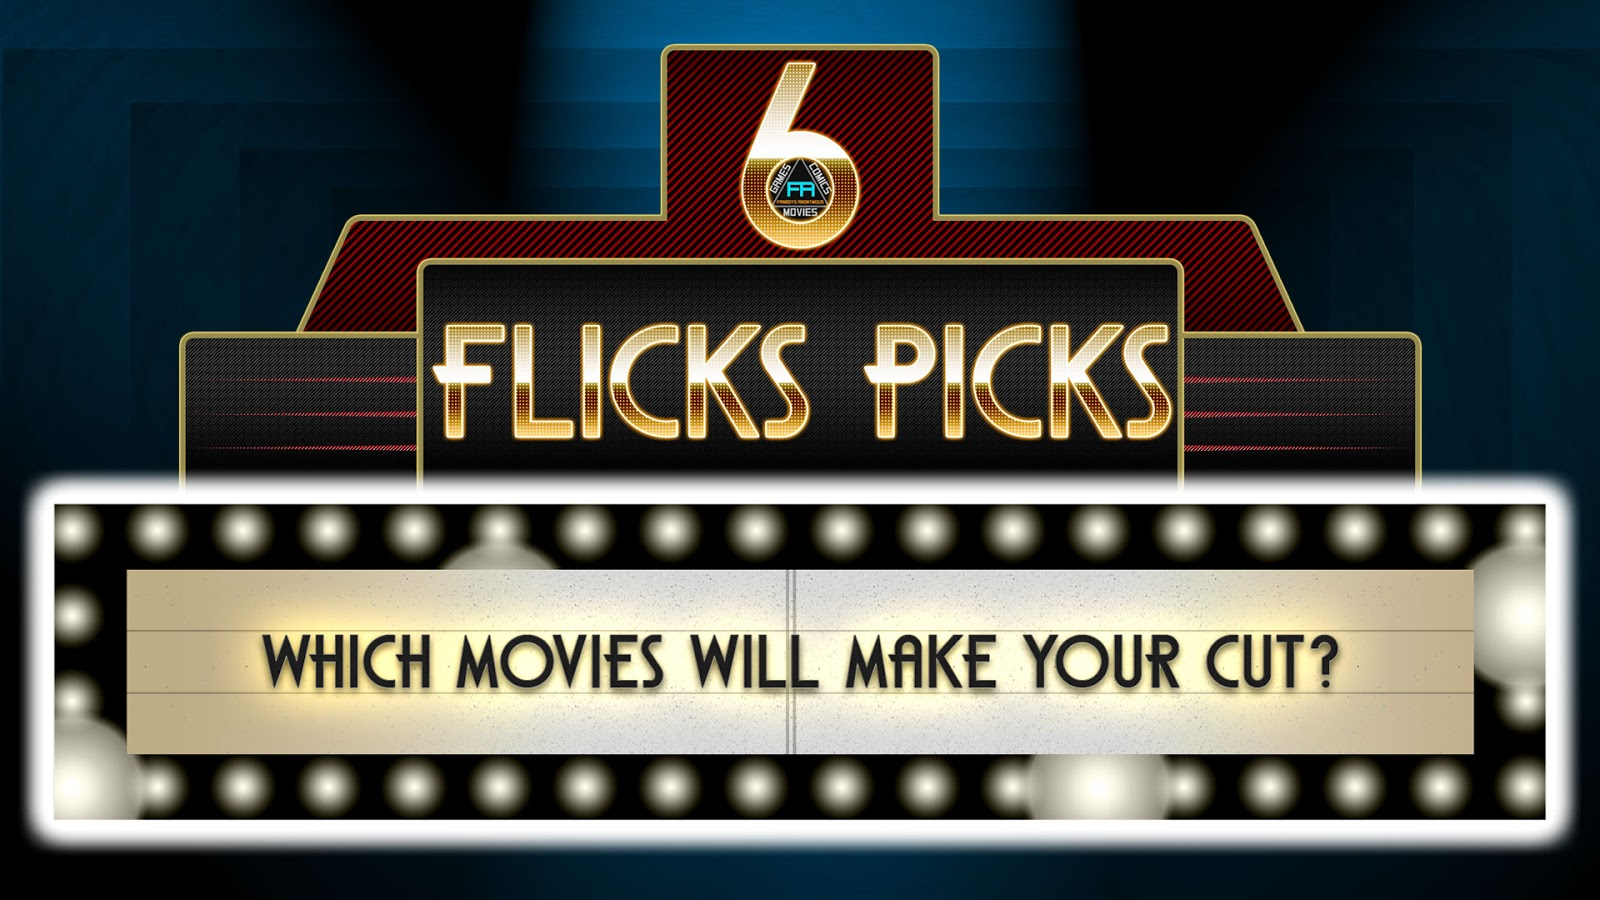 What movies are coming out September 2018 6 Flicks Picks